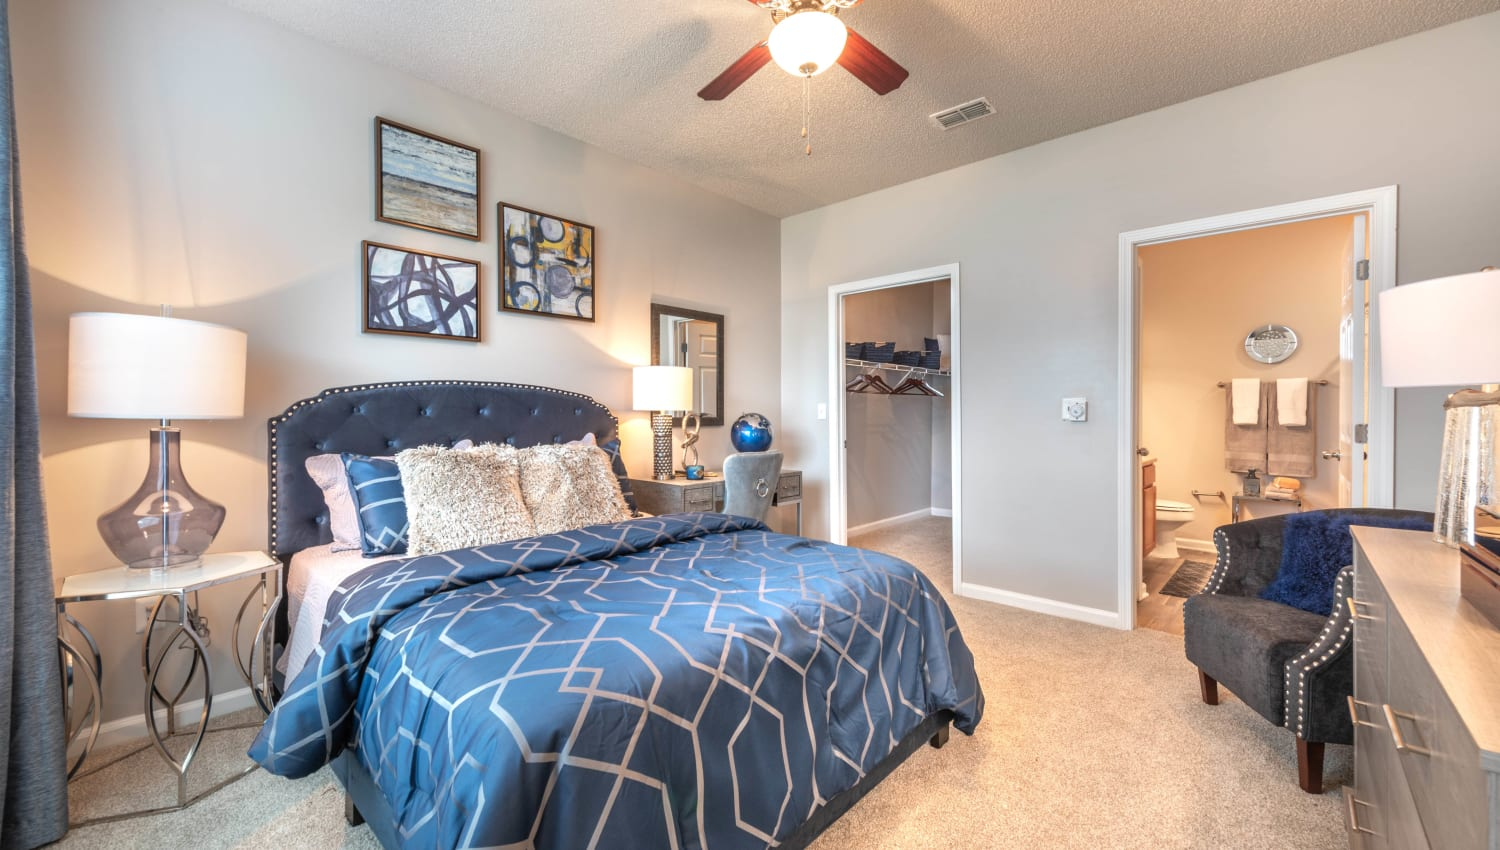 Ceiling fan and plush carpeting in the well-furnished master bedroom of an apartment home at Olympus Fenwick in Savannah, Georgia